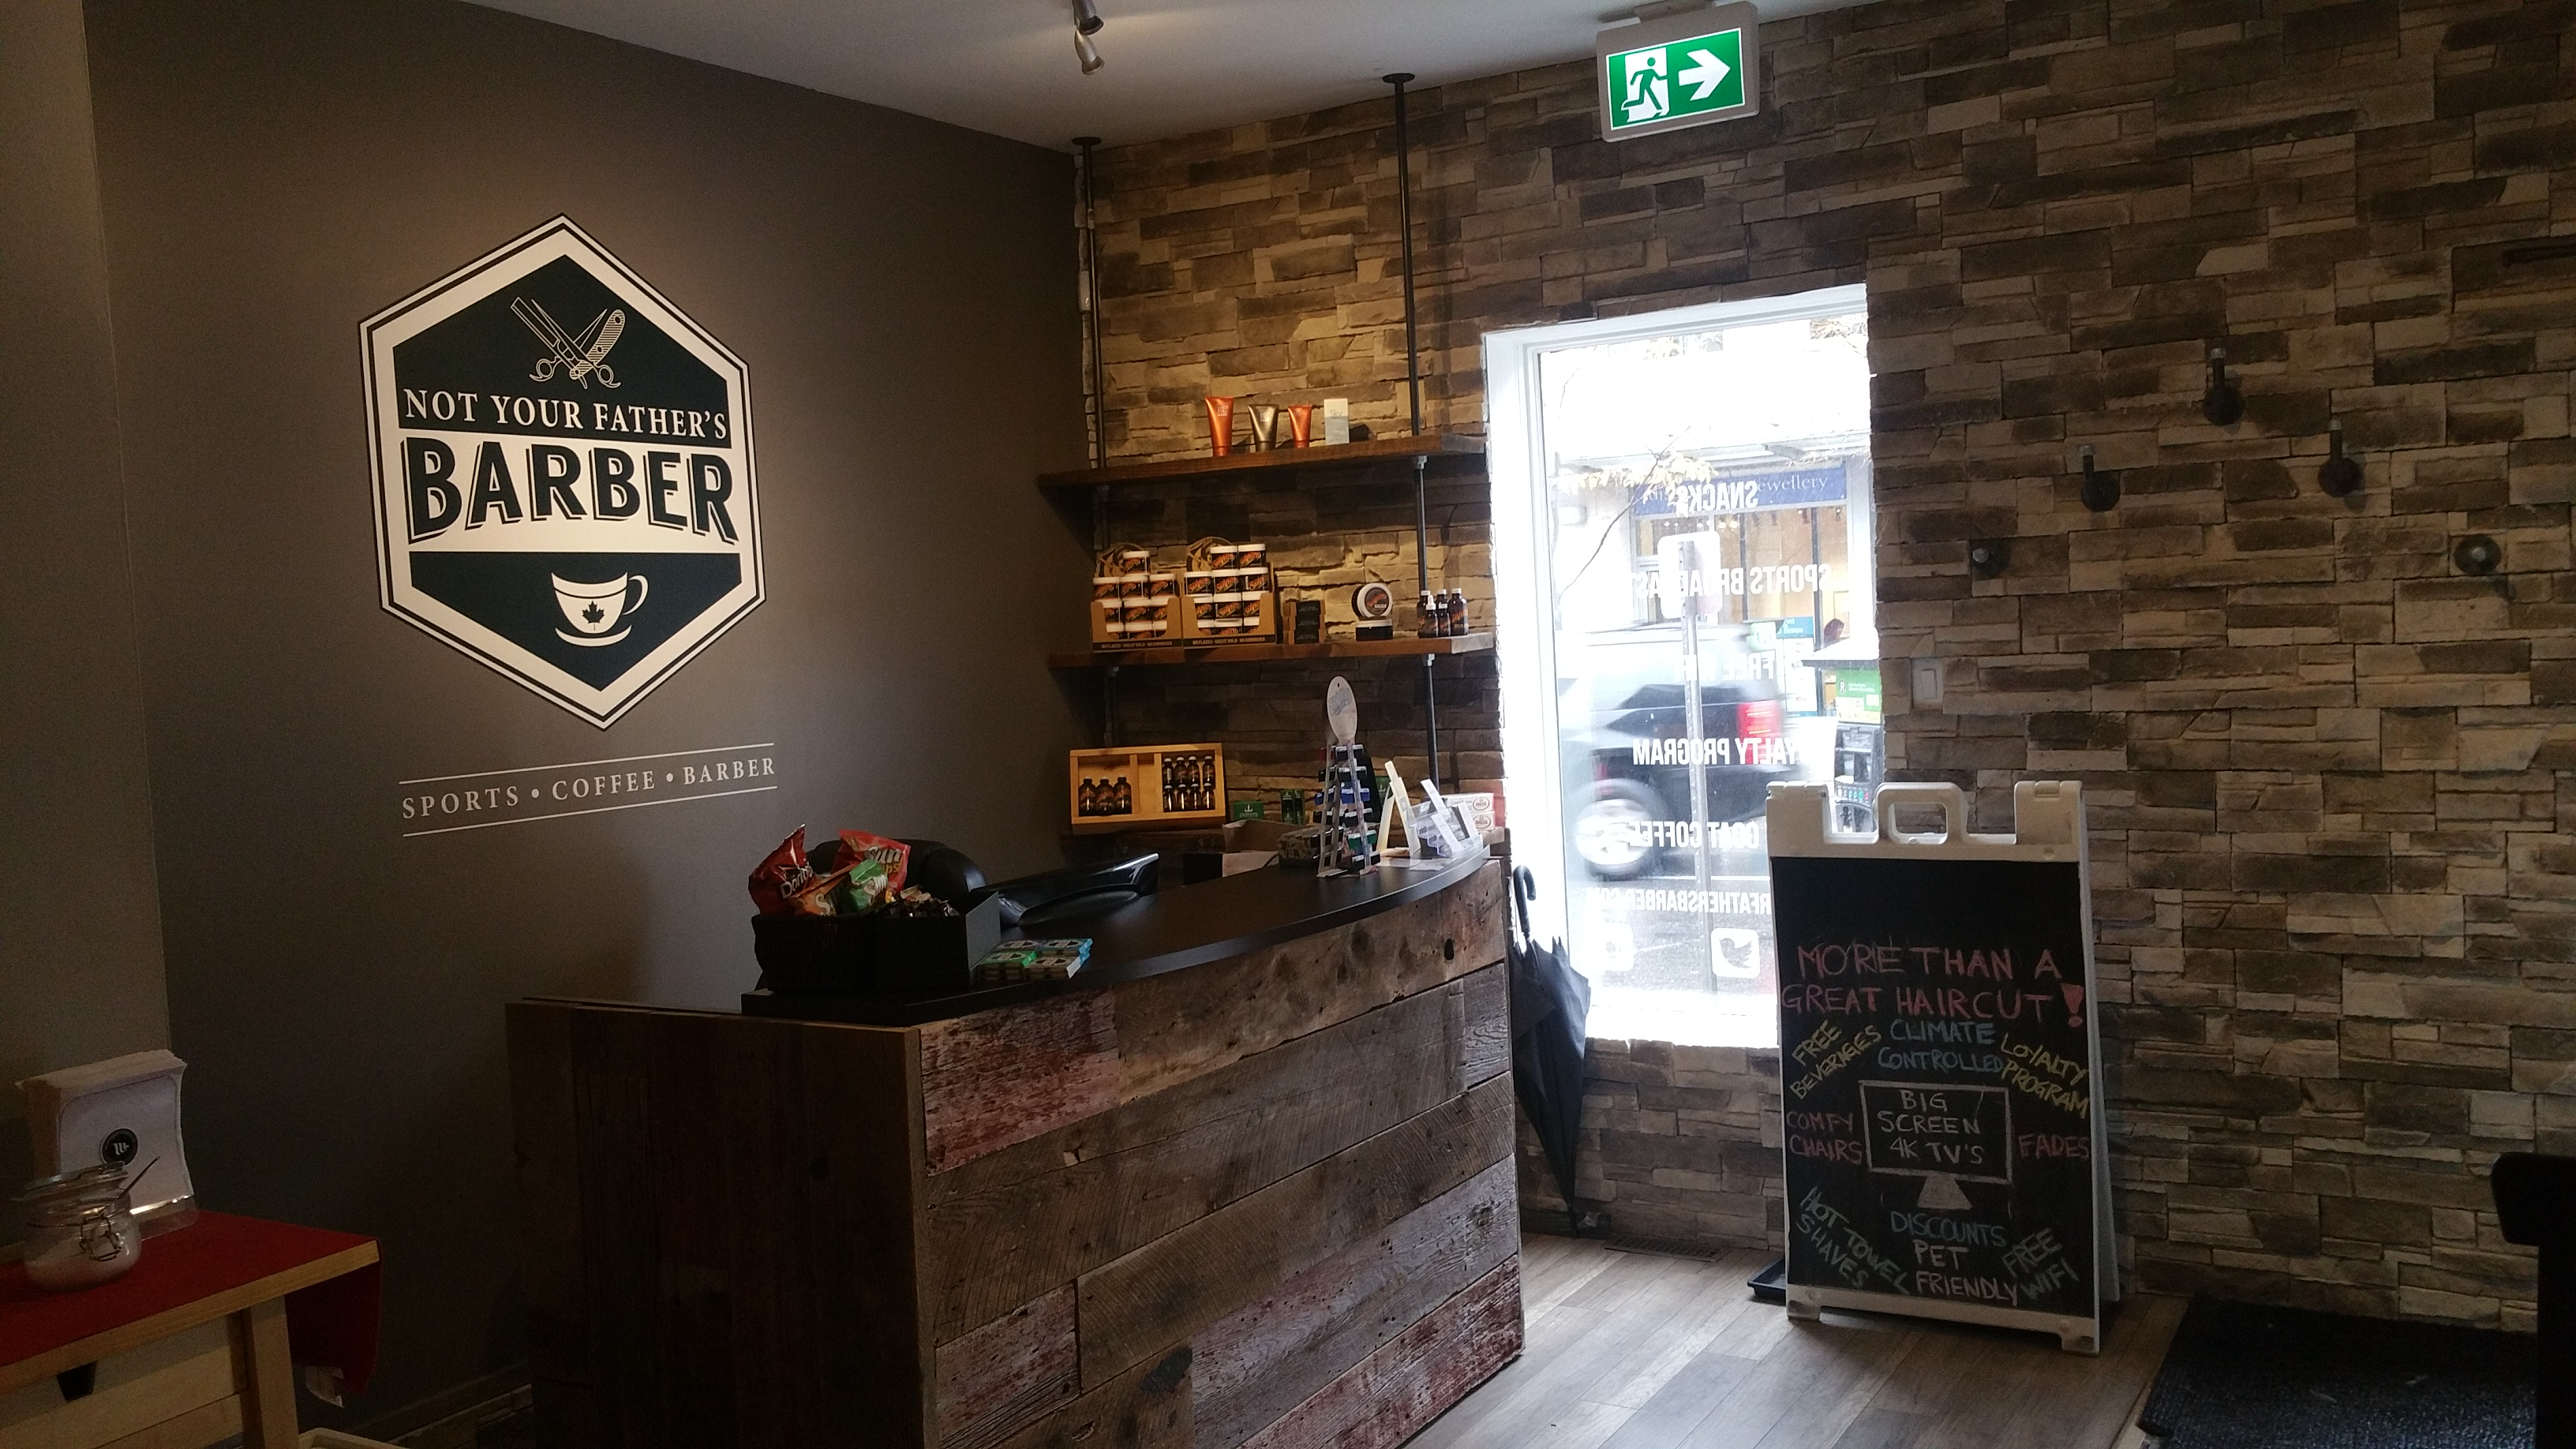 """Straight Razor shave at """"Not your Father's Barber"""""""